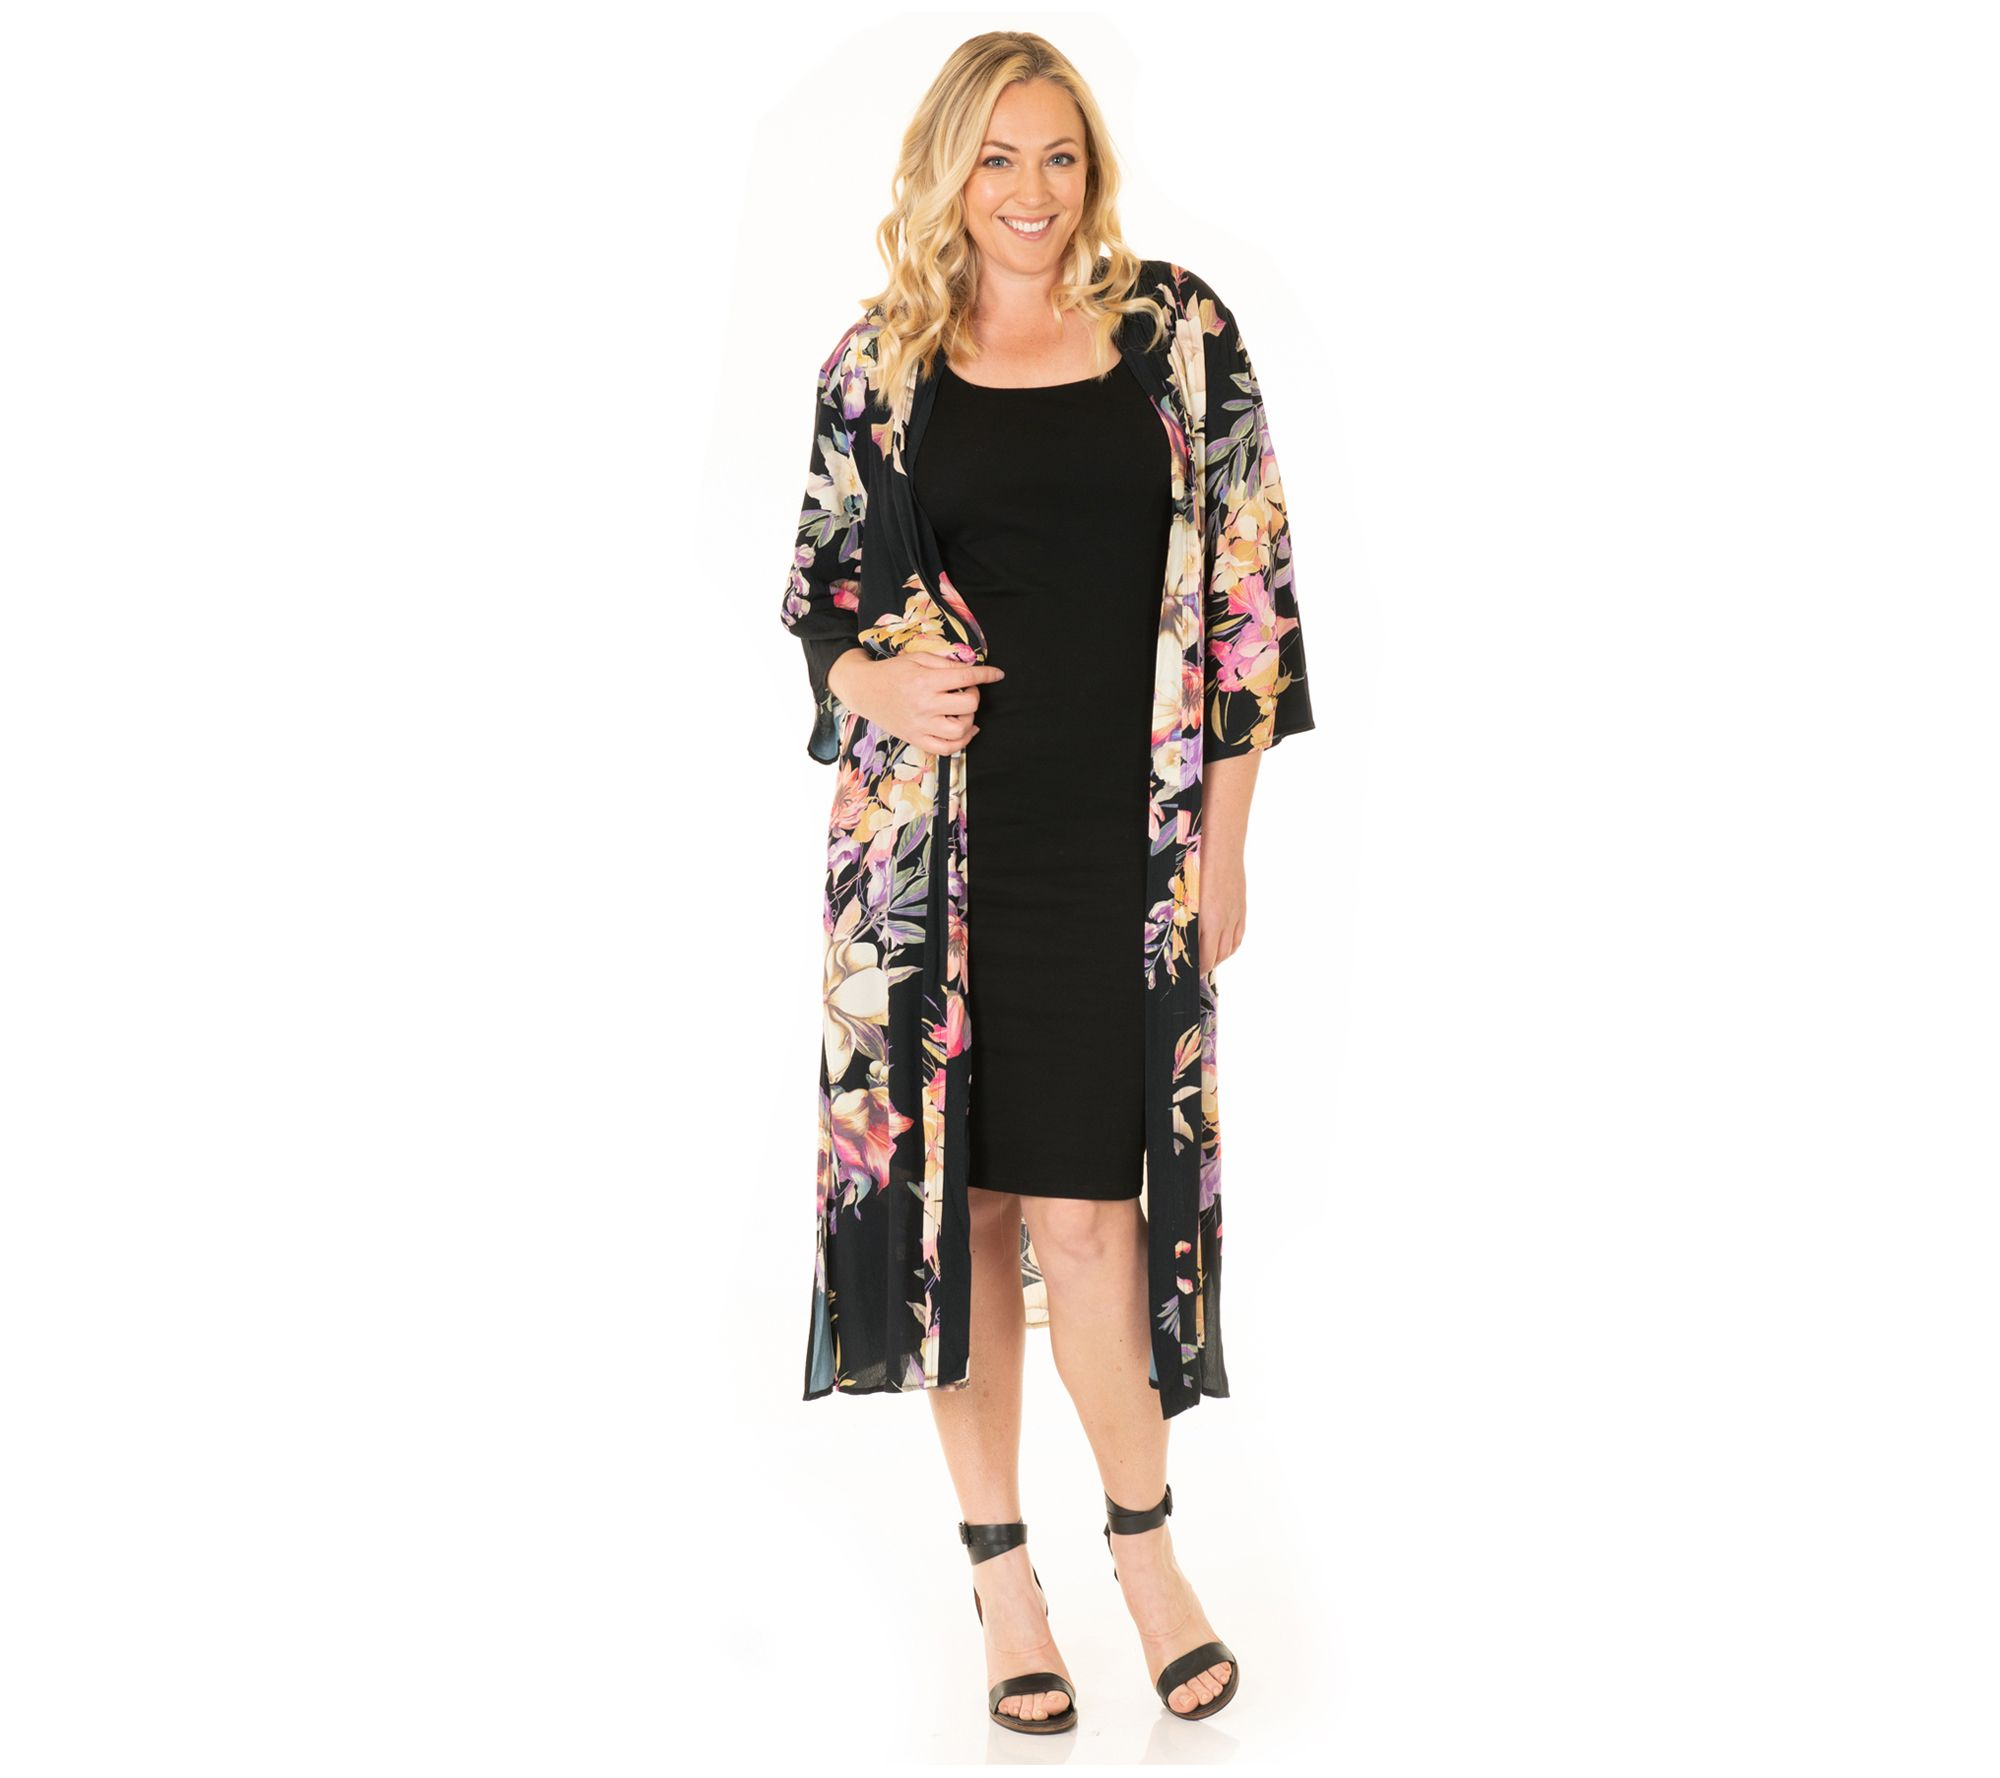 Blooming Women Bodycon Dress and Duster Set — QVC.com